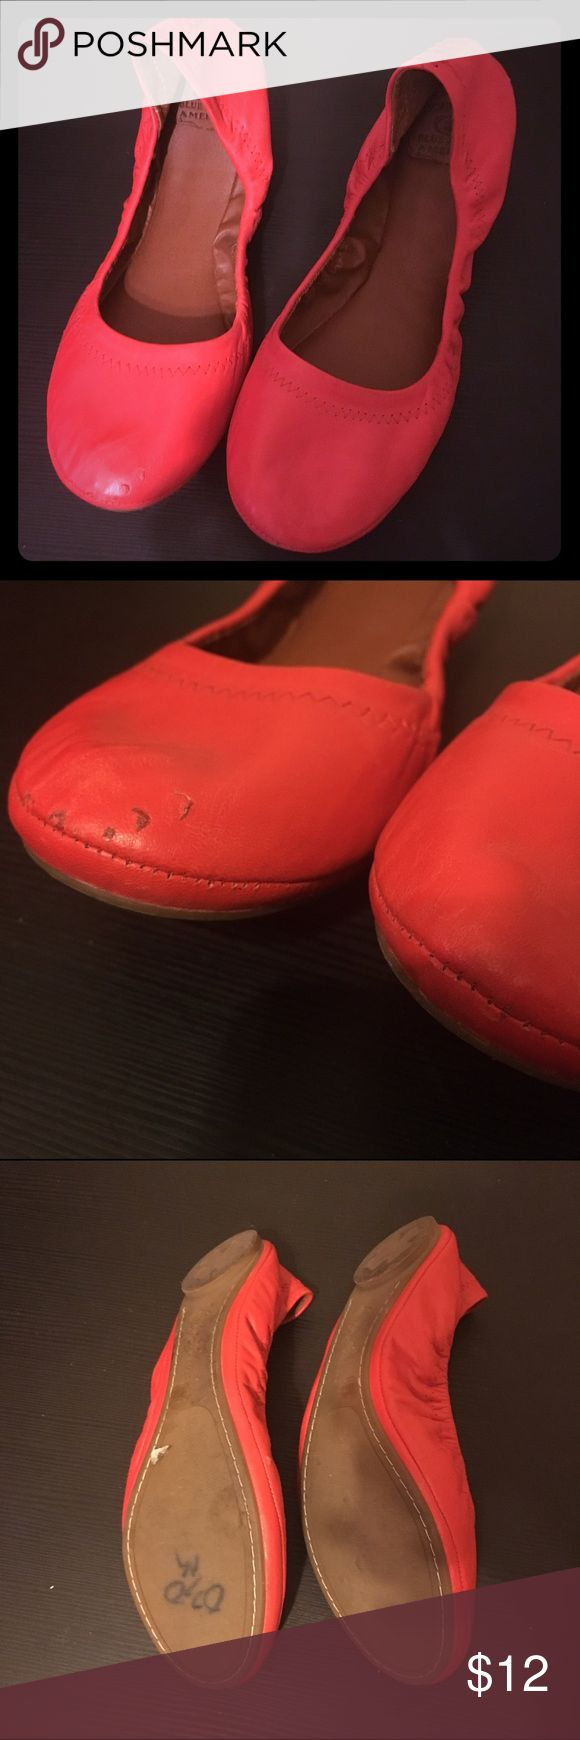 Lucky Brand Leather Round Toe Red Ballet Flats Lucky Brand Leather Round Toe Red Ballet Flats, super super cute! Used but in good condition, there are a few scrapes on right shoe, I tried to capture them clearly in the second picture. Lucky Brand Shoes Flats & Loafers